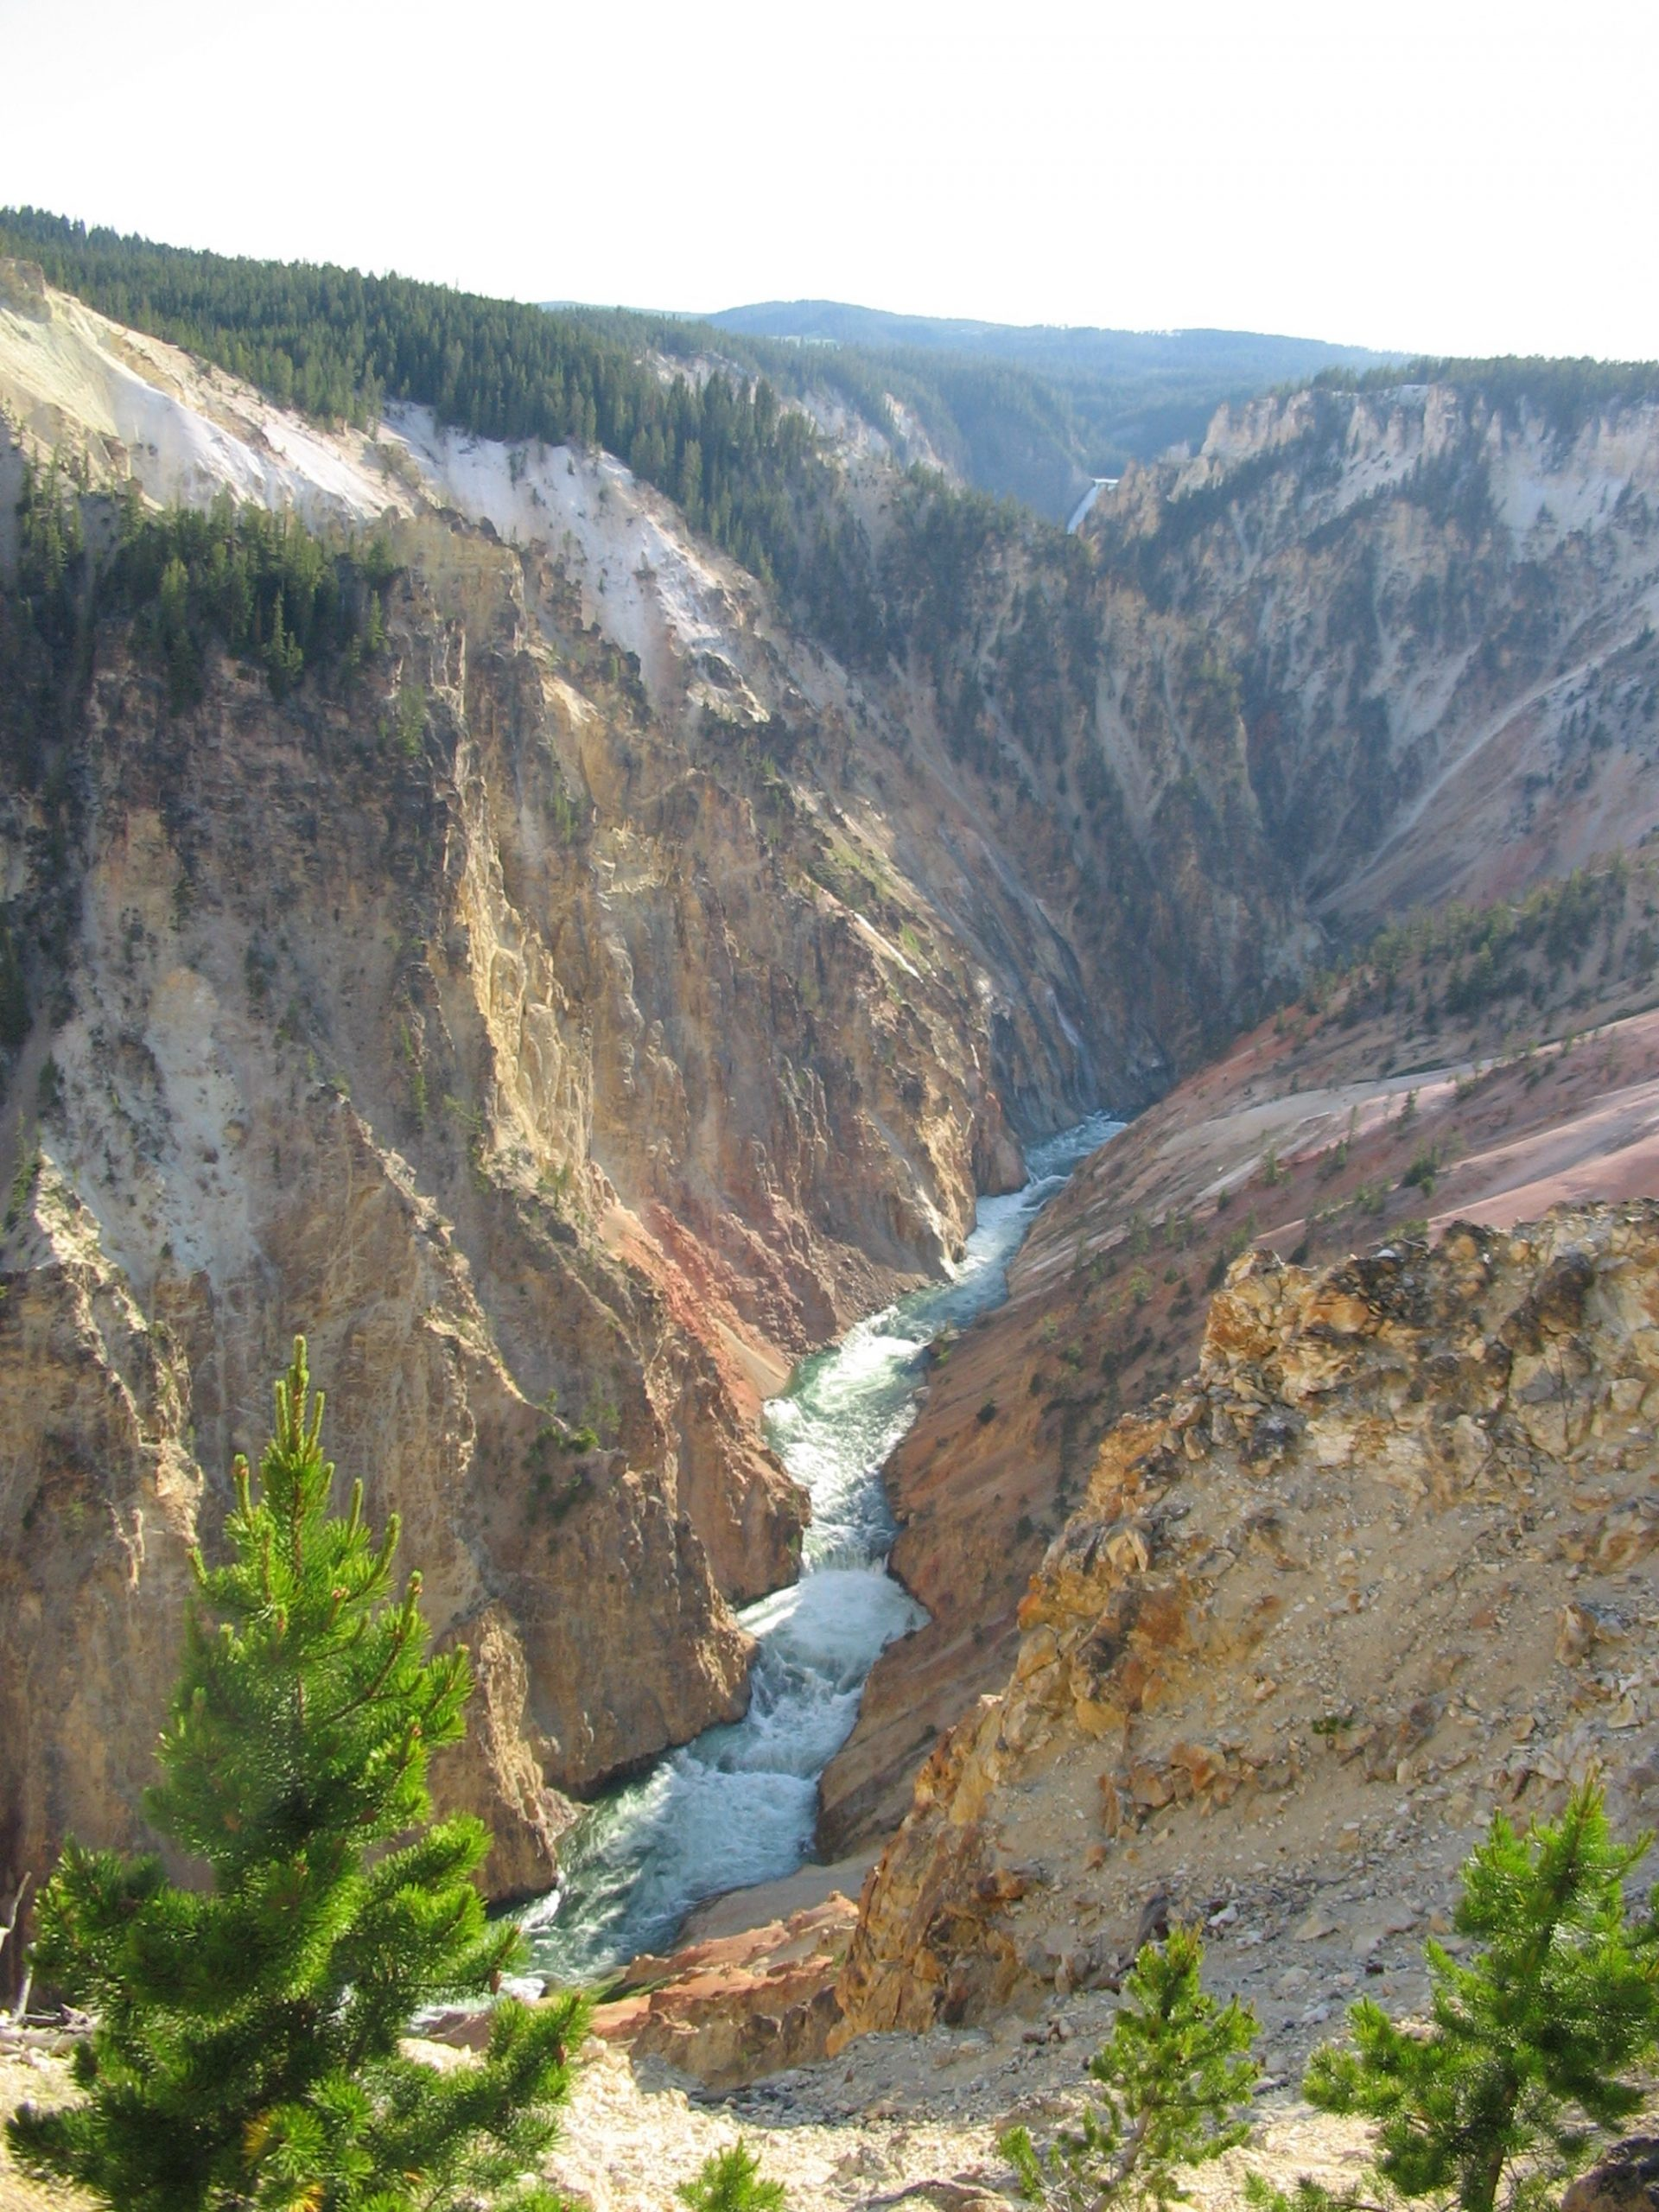 View of Yellowstone Grand Canyon with Yellowstone River in bottom